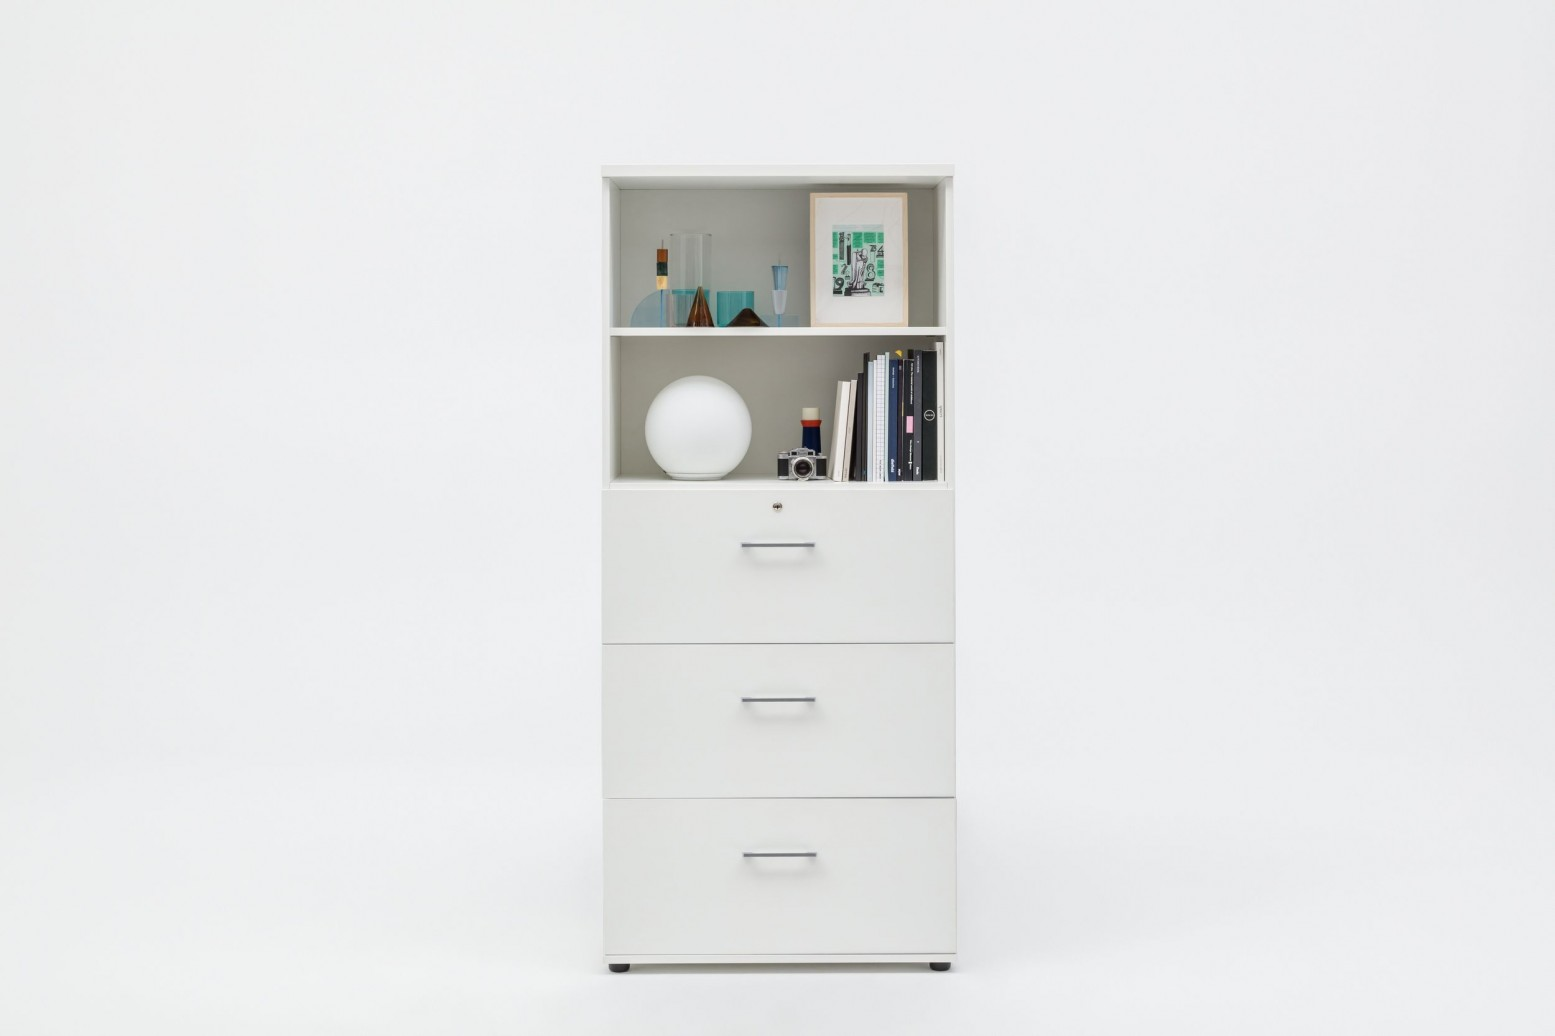 Picture of: Standard Filing Drawers Office Storage Cabinet By Mdd Office Furniture Sohomod Com